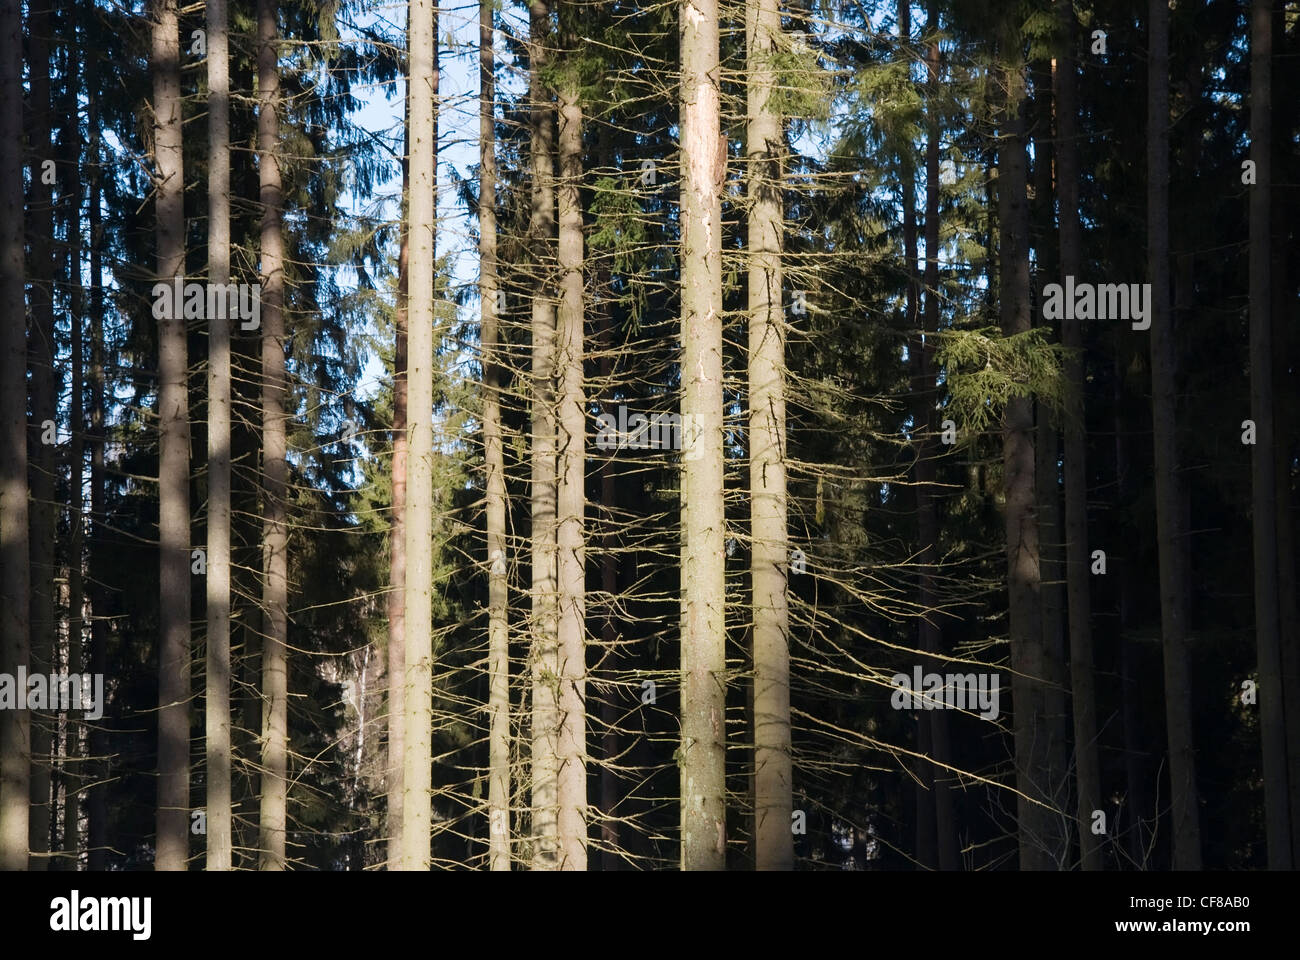 Spruces in sunlight - Stock Image